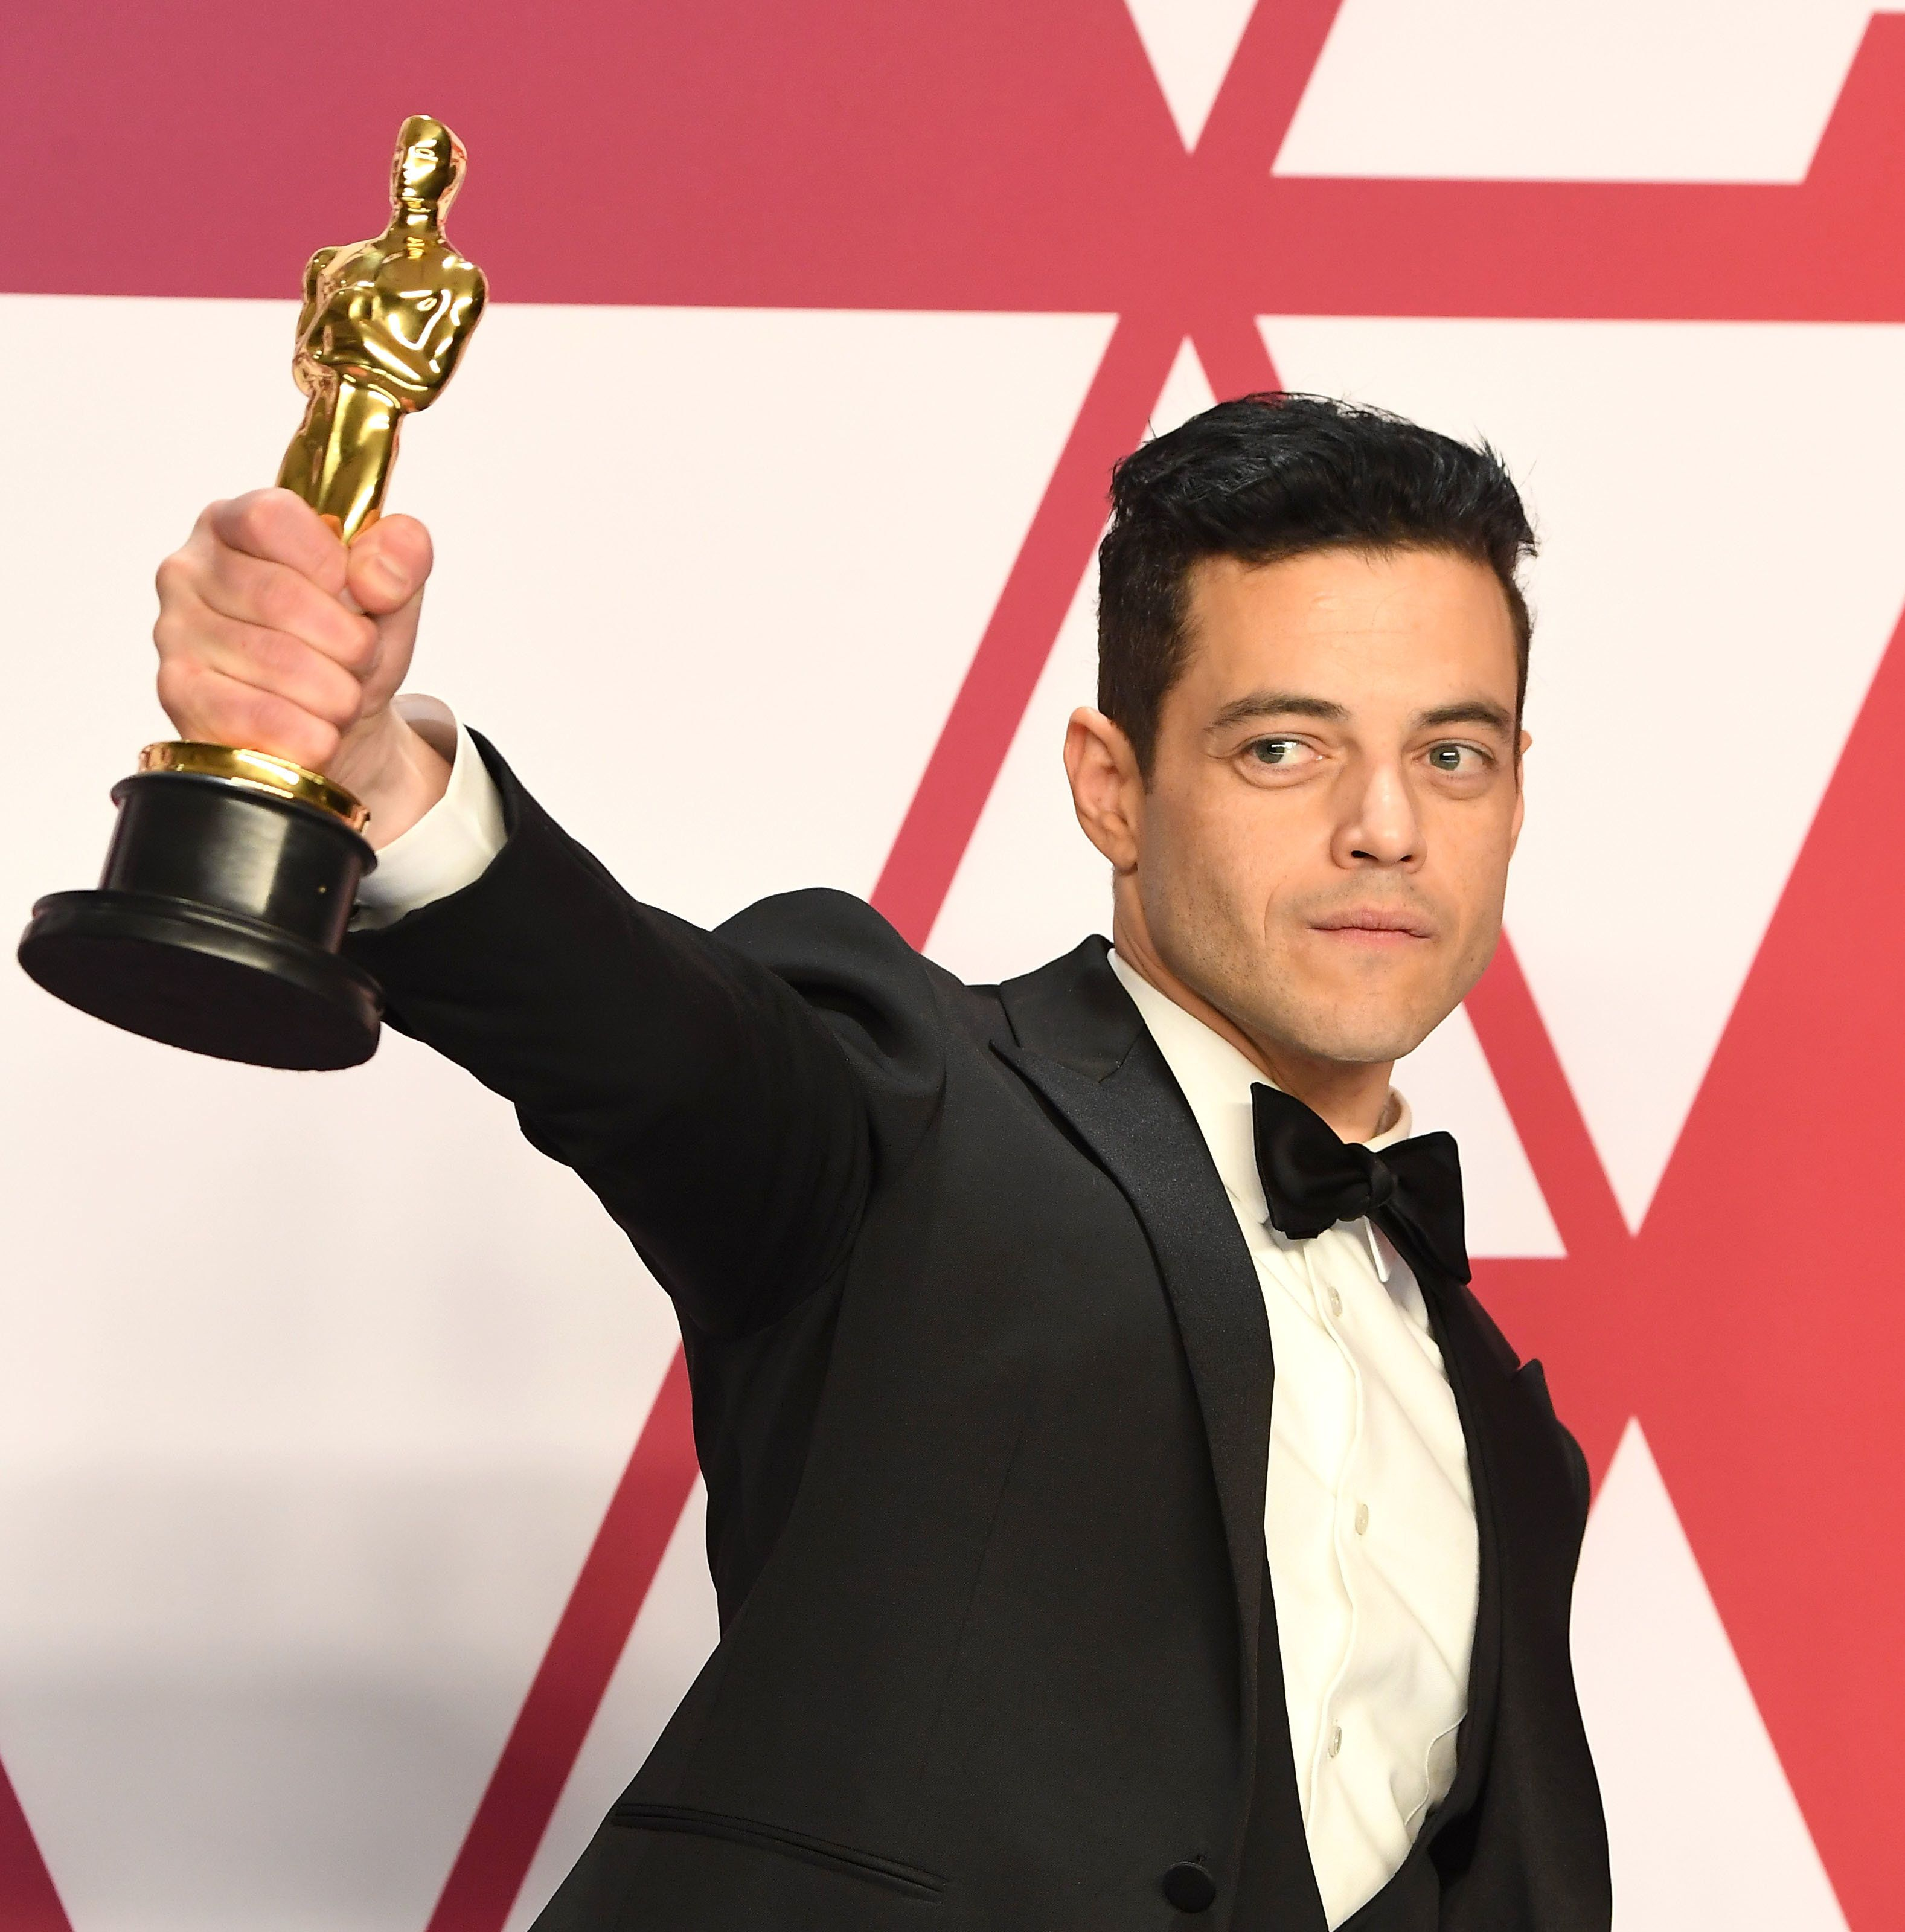 HOLLYWOOD, CALIFORNIA - FEBRUARY 24: Rami Malek poses at the 91st Annual Academy Awards at Hollywood and Highland on February 24, 2019 in Hollywood, California. (Photo by Steve Granitz/WireImage )